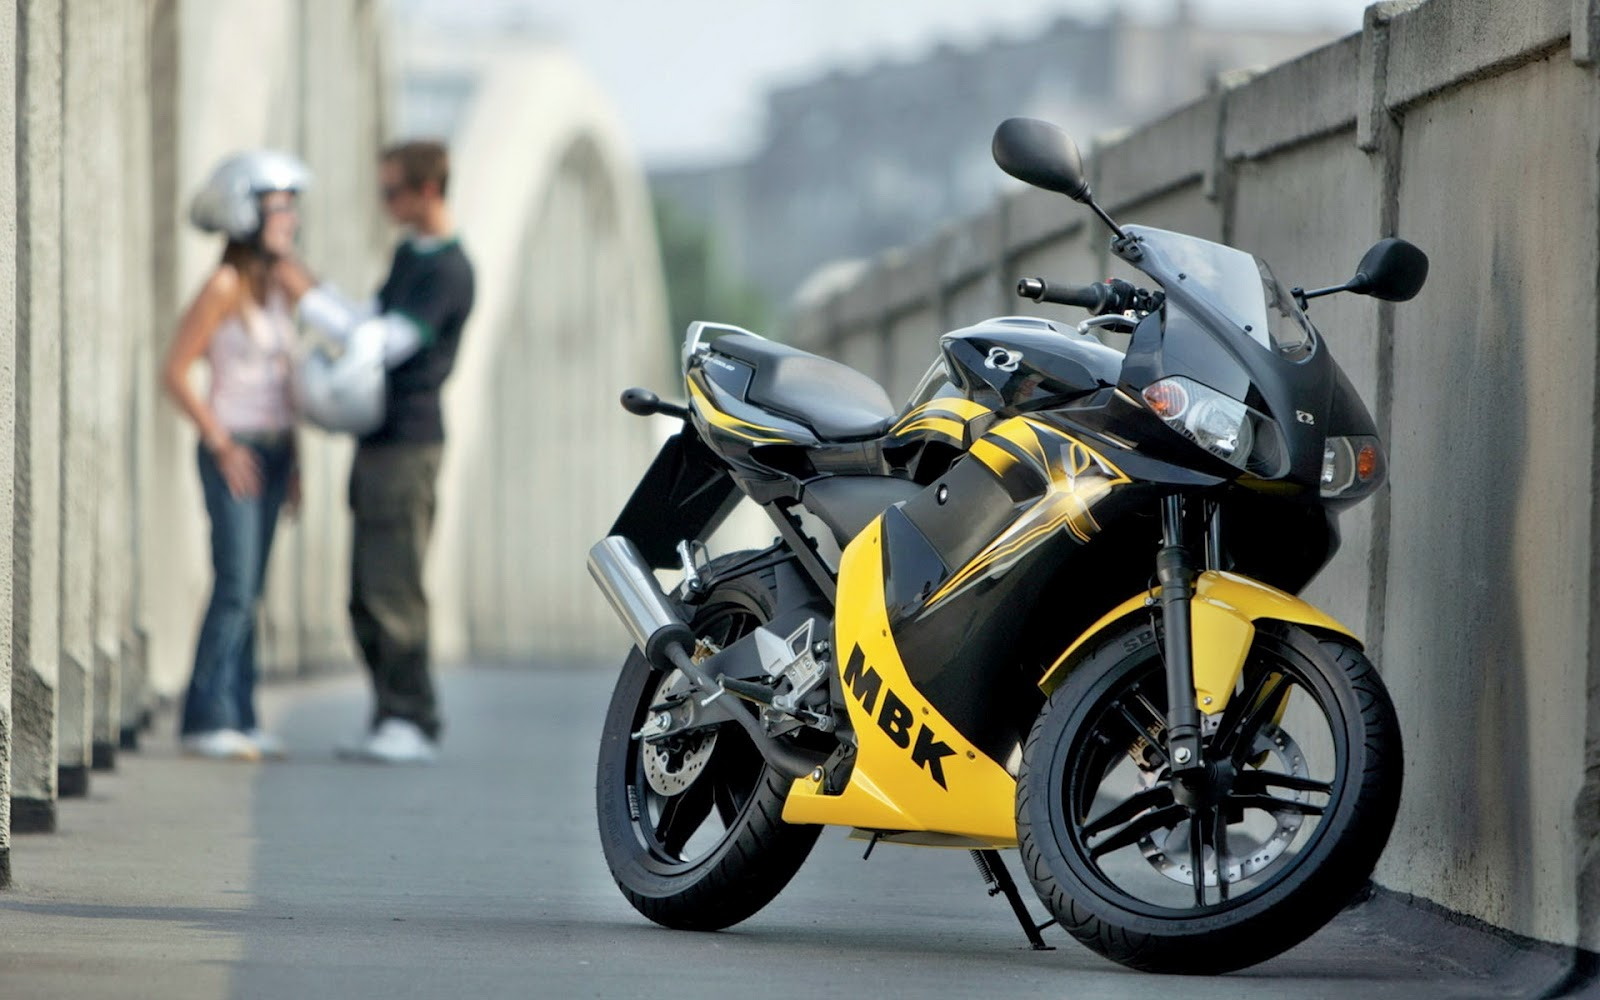 Bike Wallpapers And Bike Photos ~ HD Wallpapers And Images